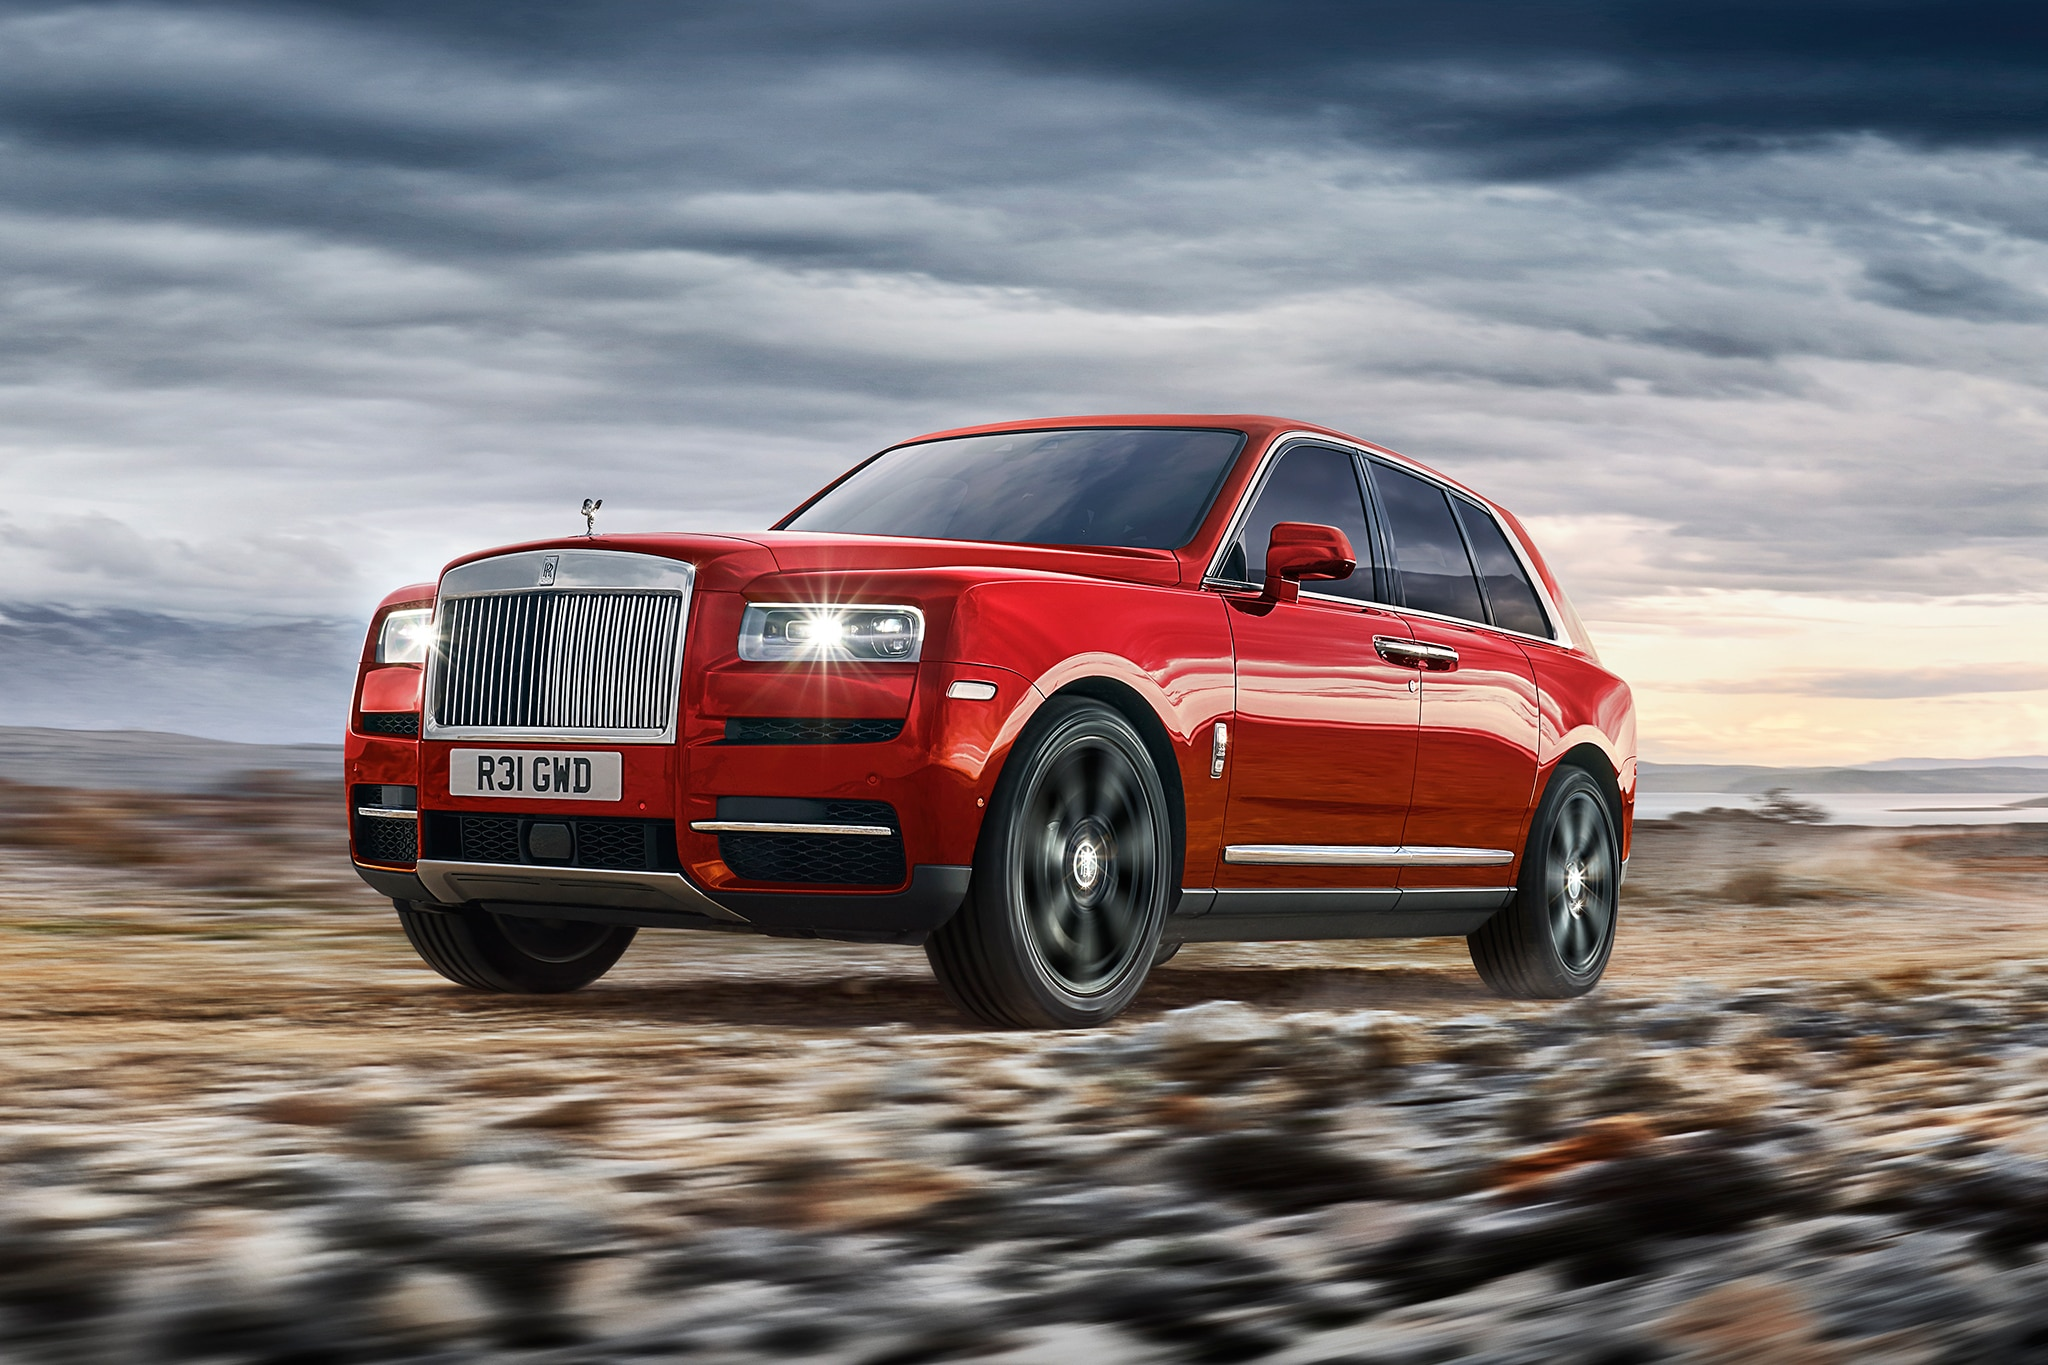 2019 Rolls Royce Cullinan: Design, Powertrain, Release >> By Design 2019 Rolls Royce Cullinan Automobile Magazine